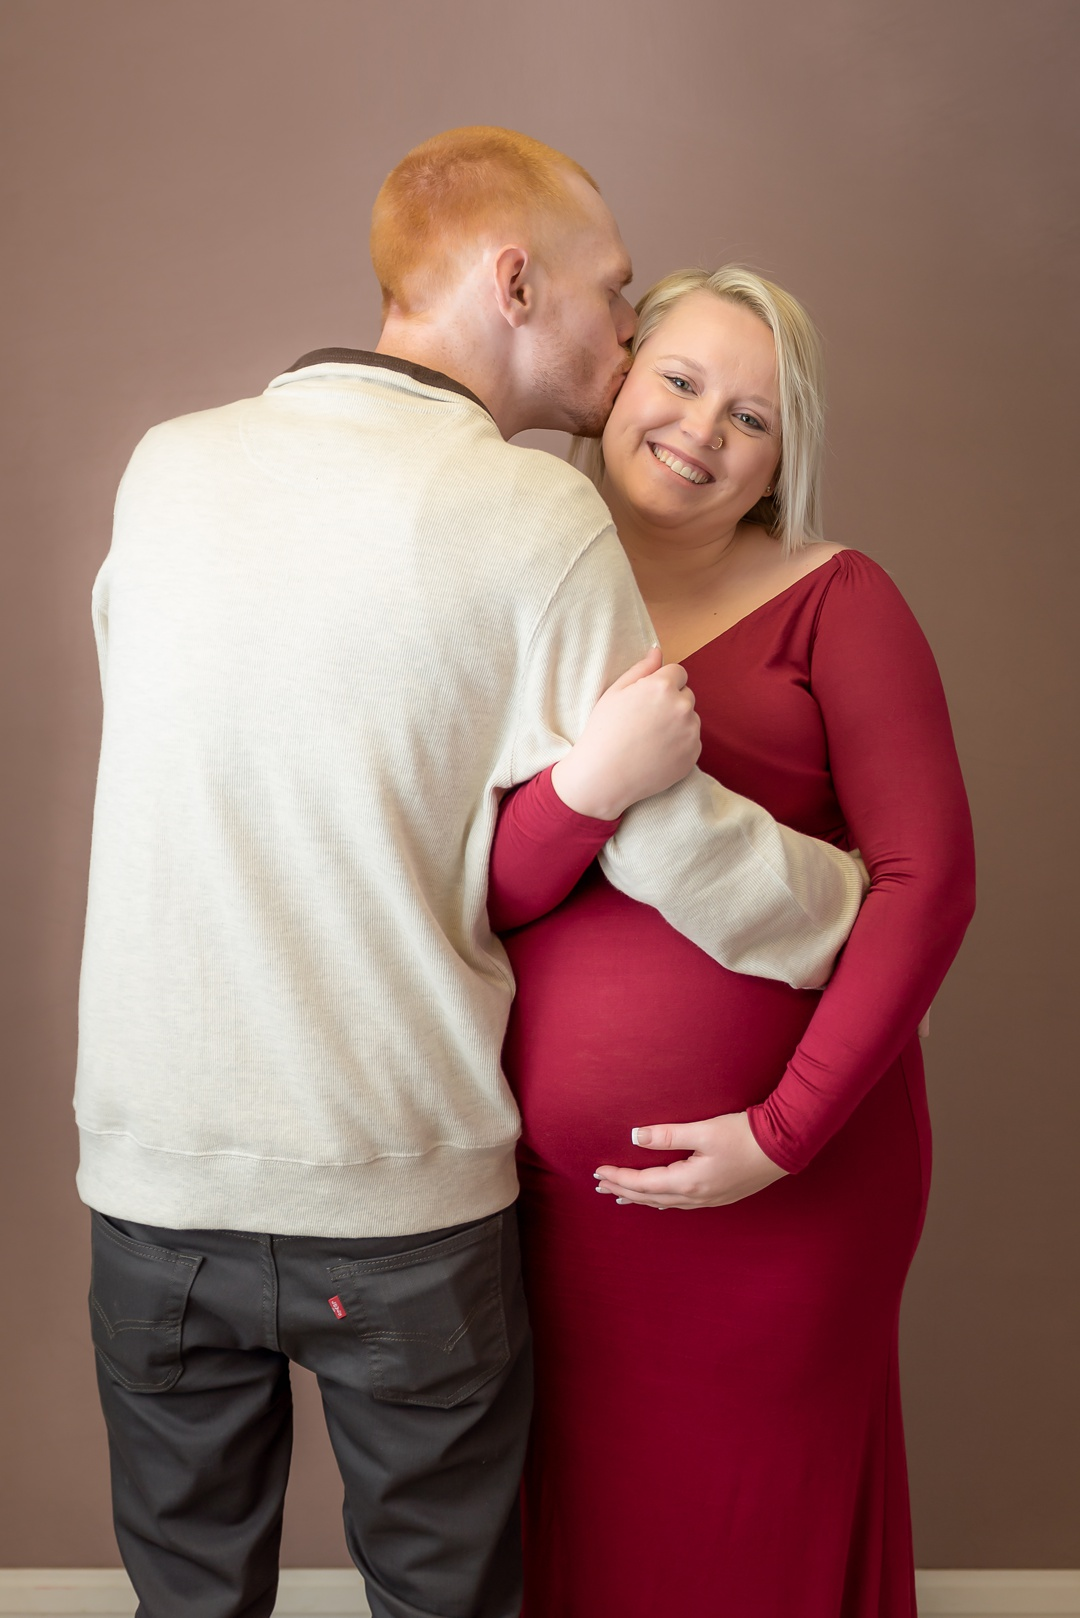 simpsonville-maternity-photographer-amy-marsh-photography_0069.jpg